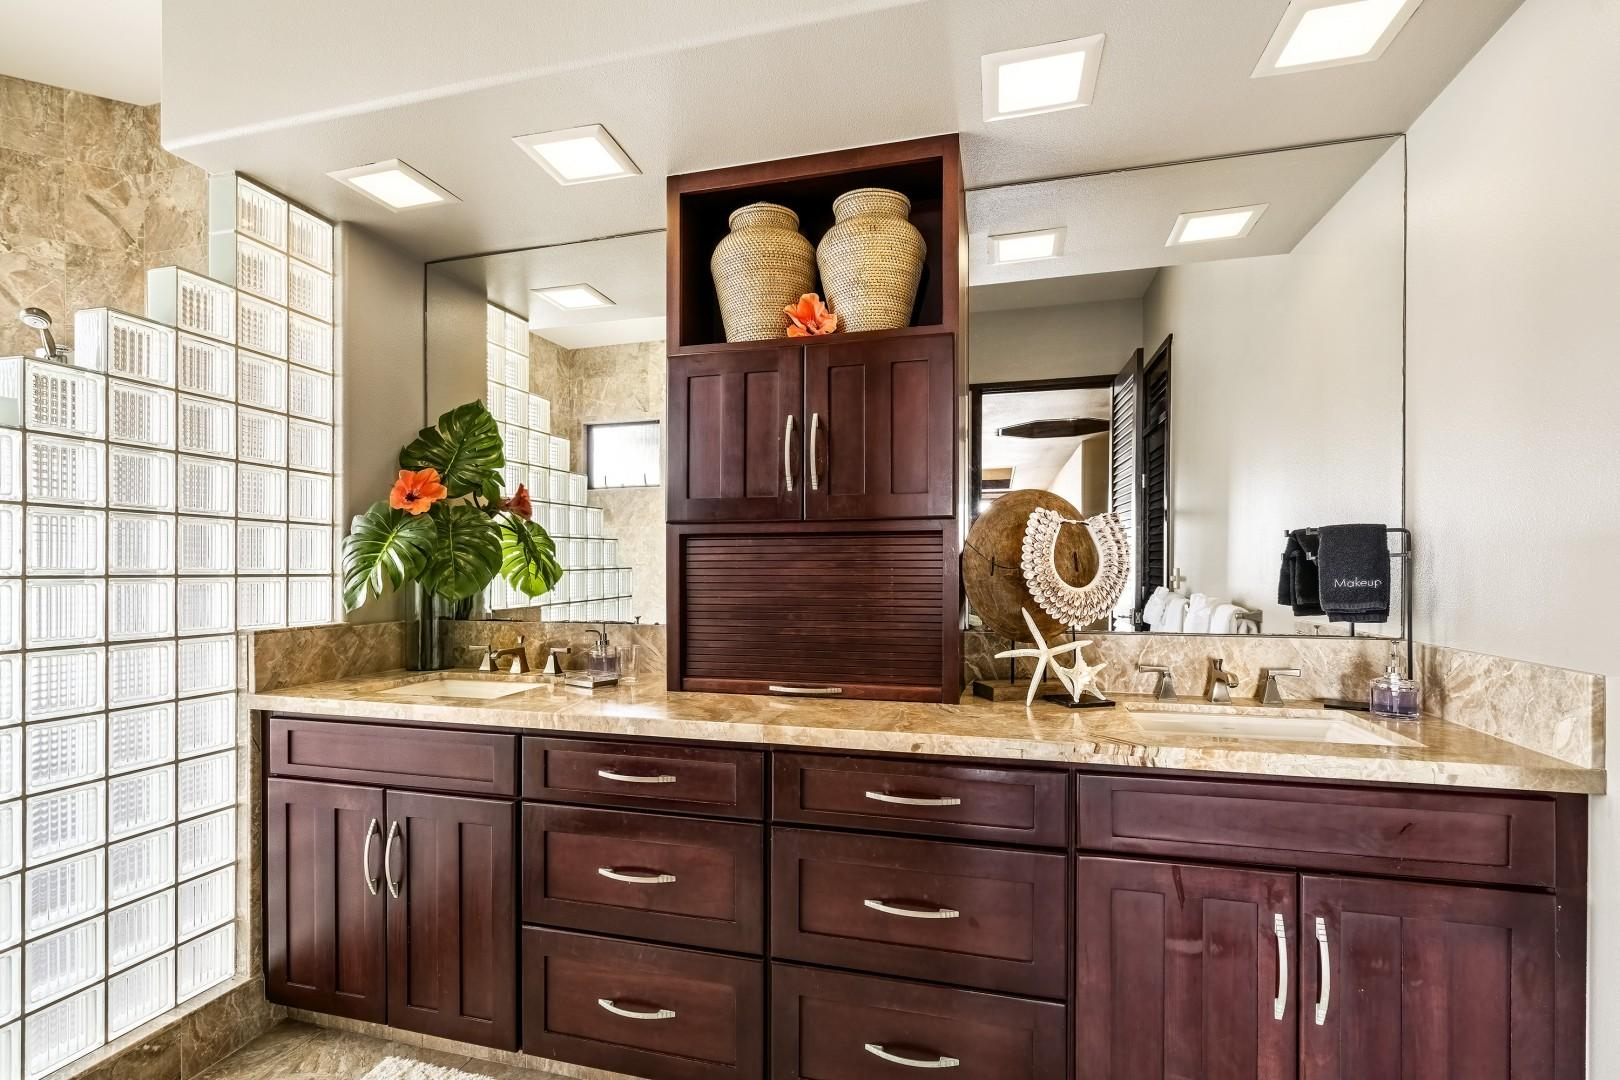 Master bathroom equipped with dual vanities